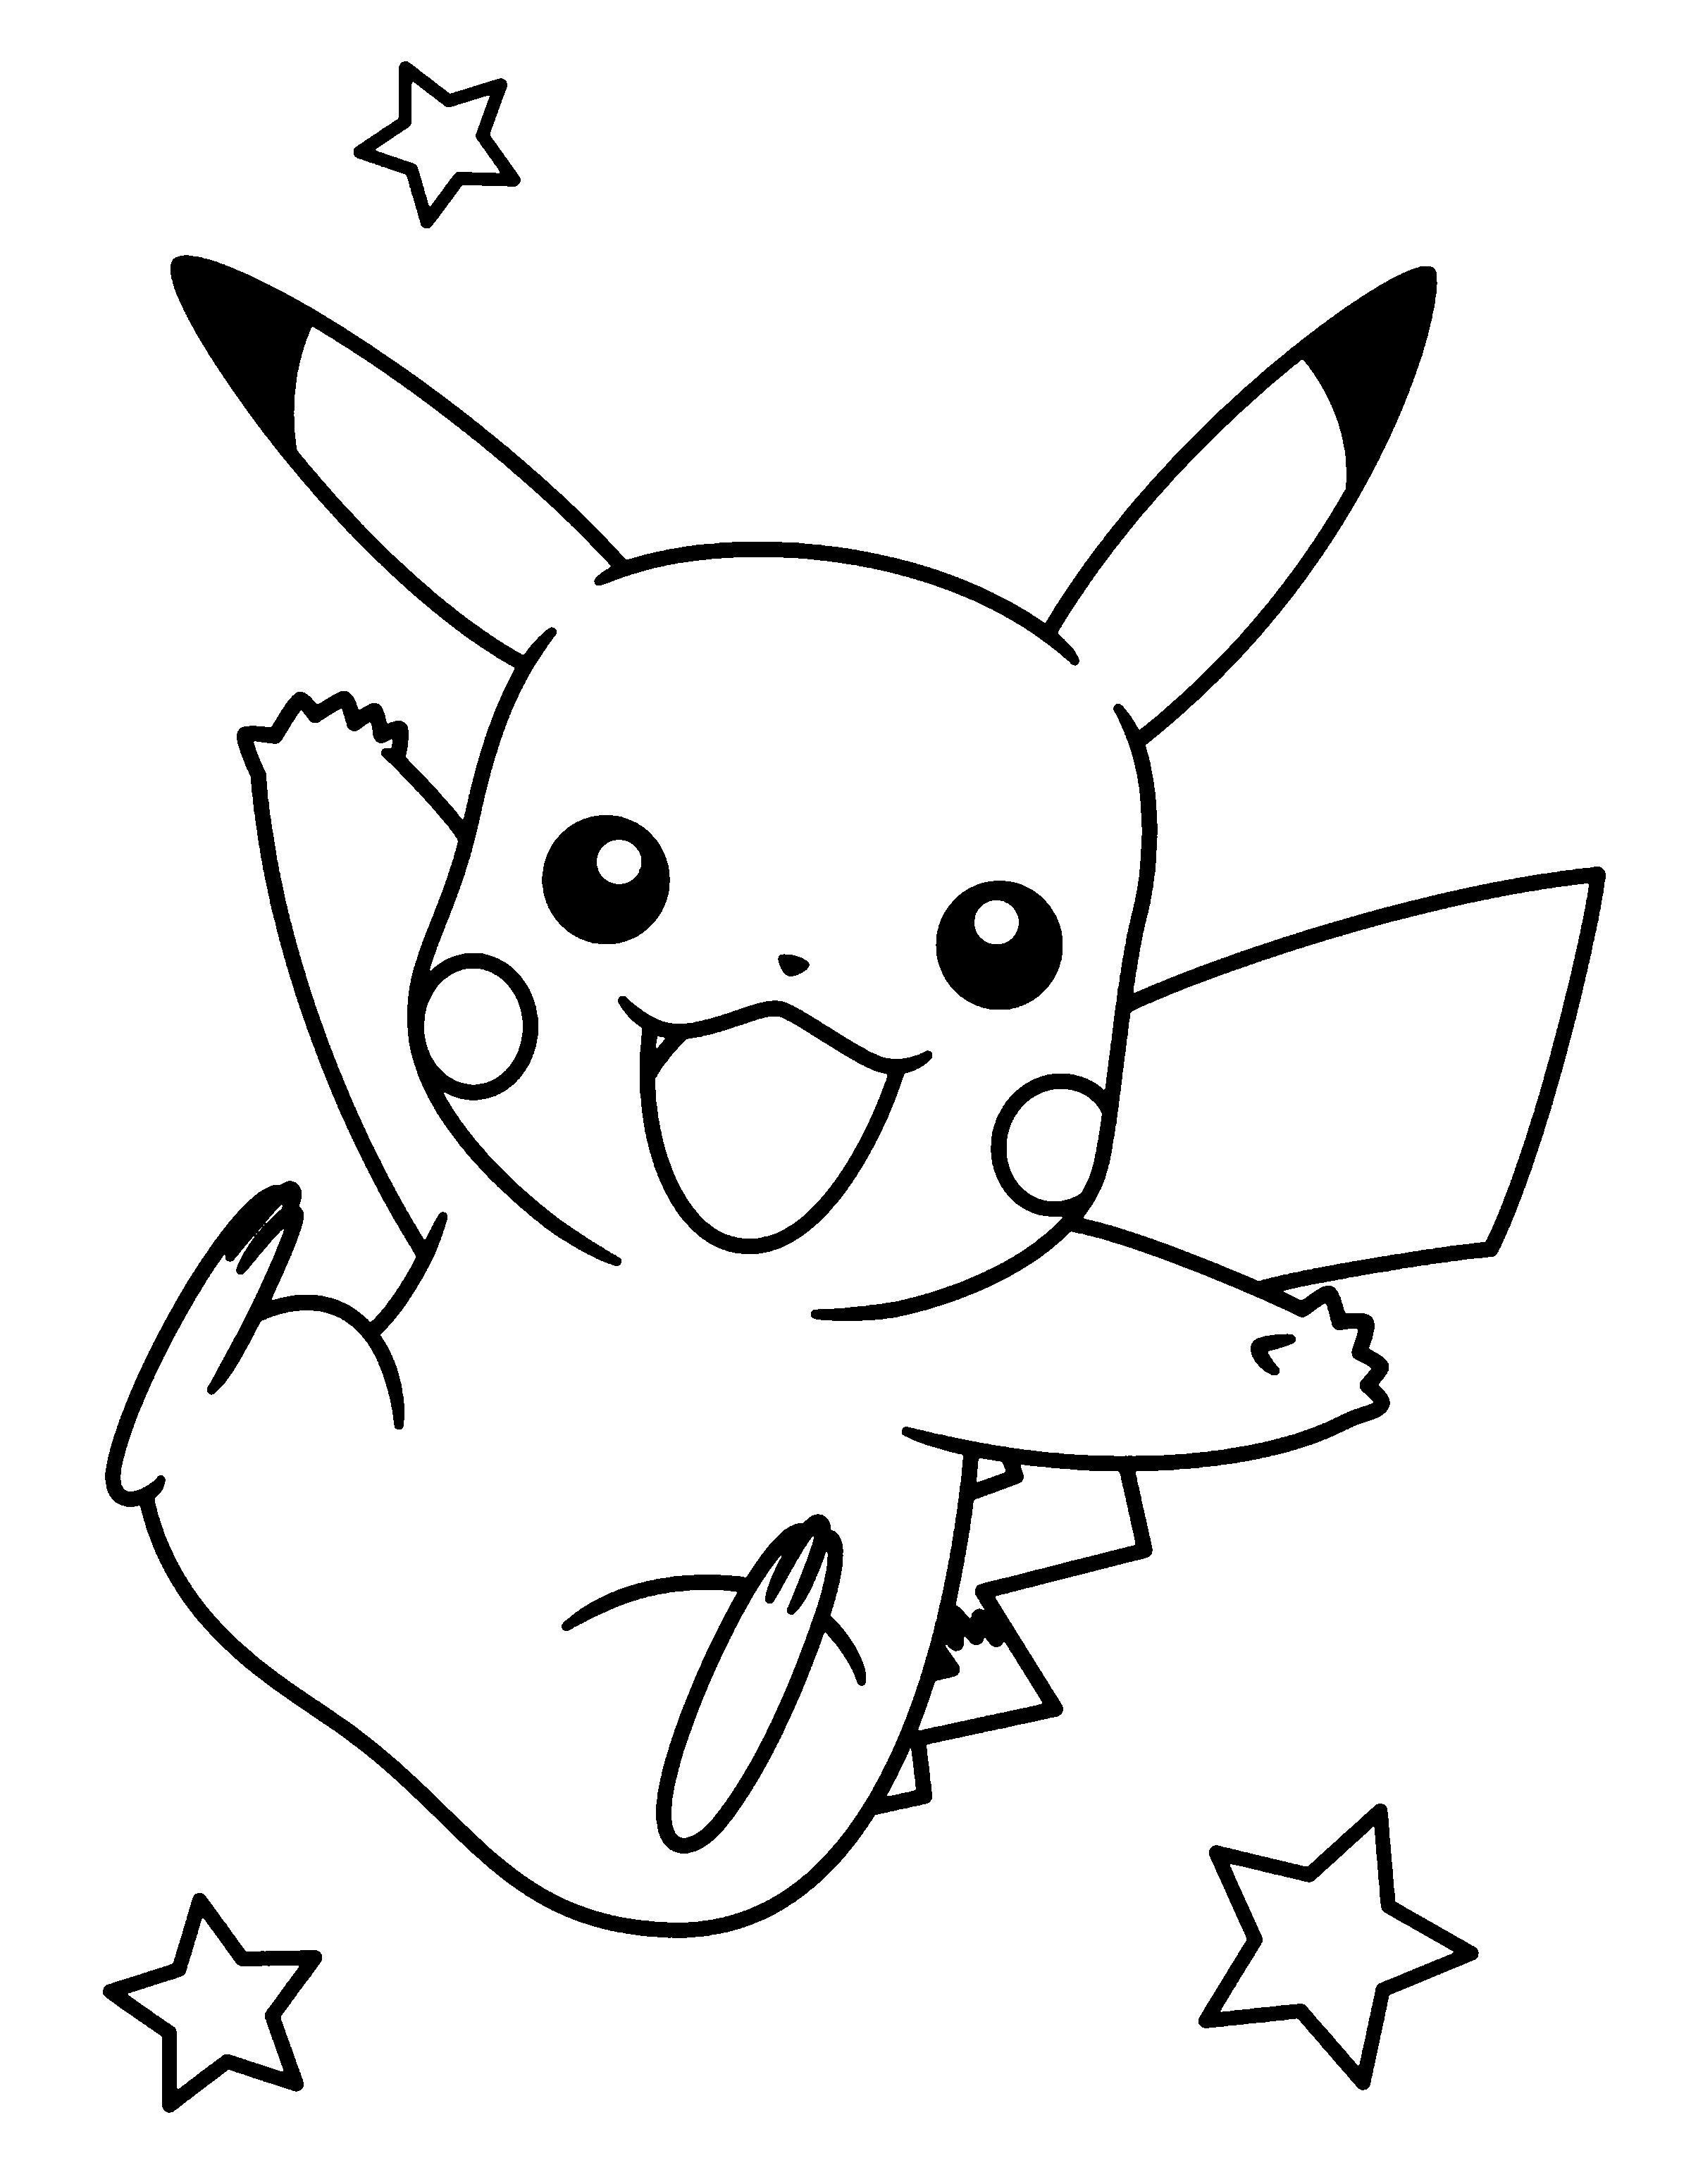 Little Pikachu Pokemon Coloring Pages Pokemon Coloring Pages